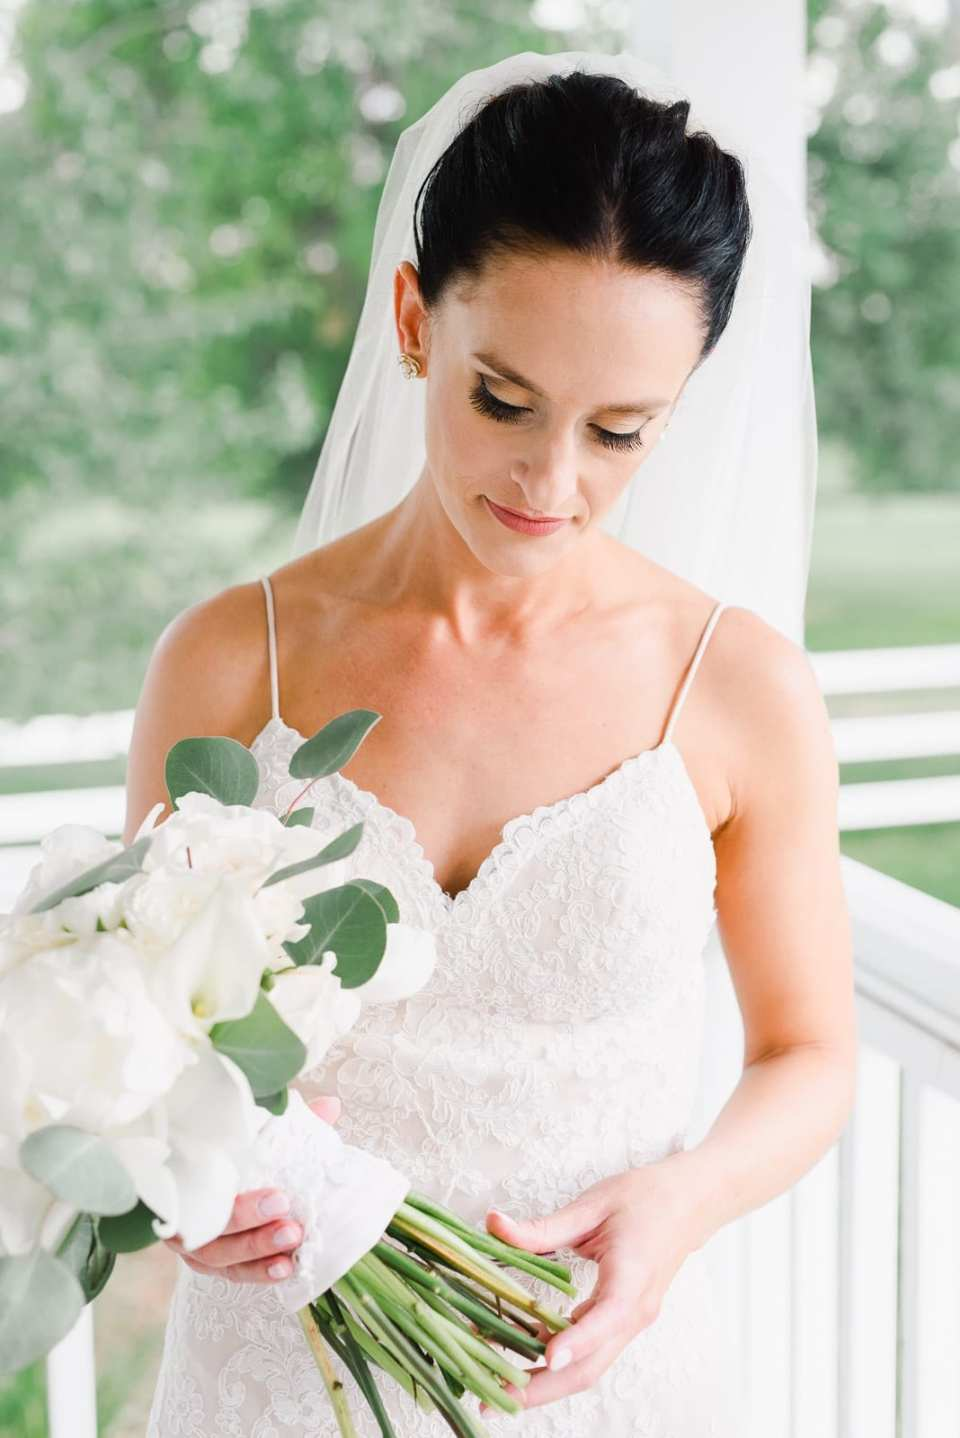 Classic wedding style Bride by Josie V Photography